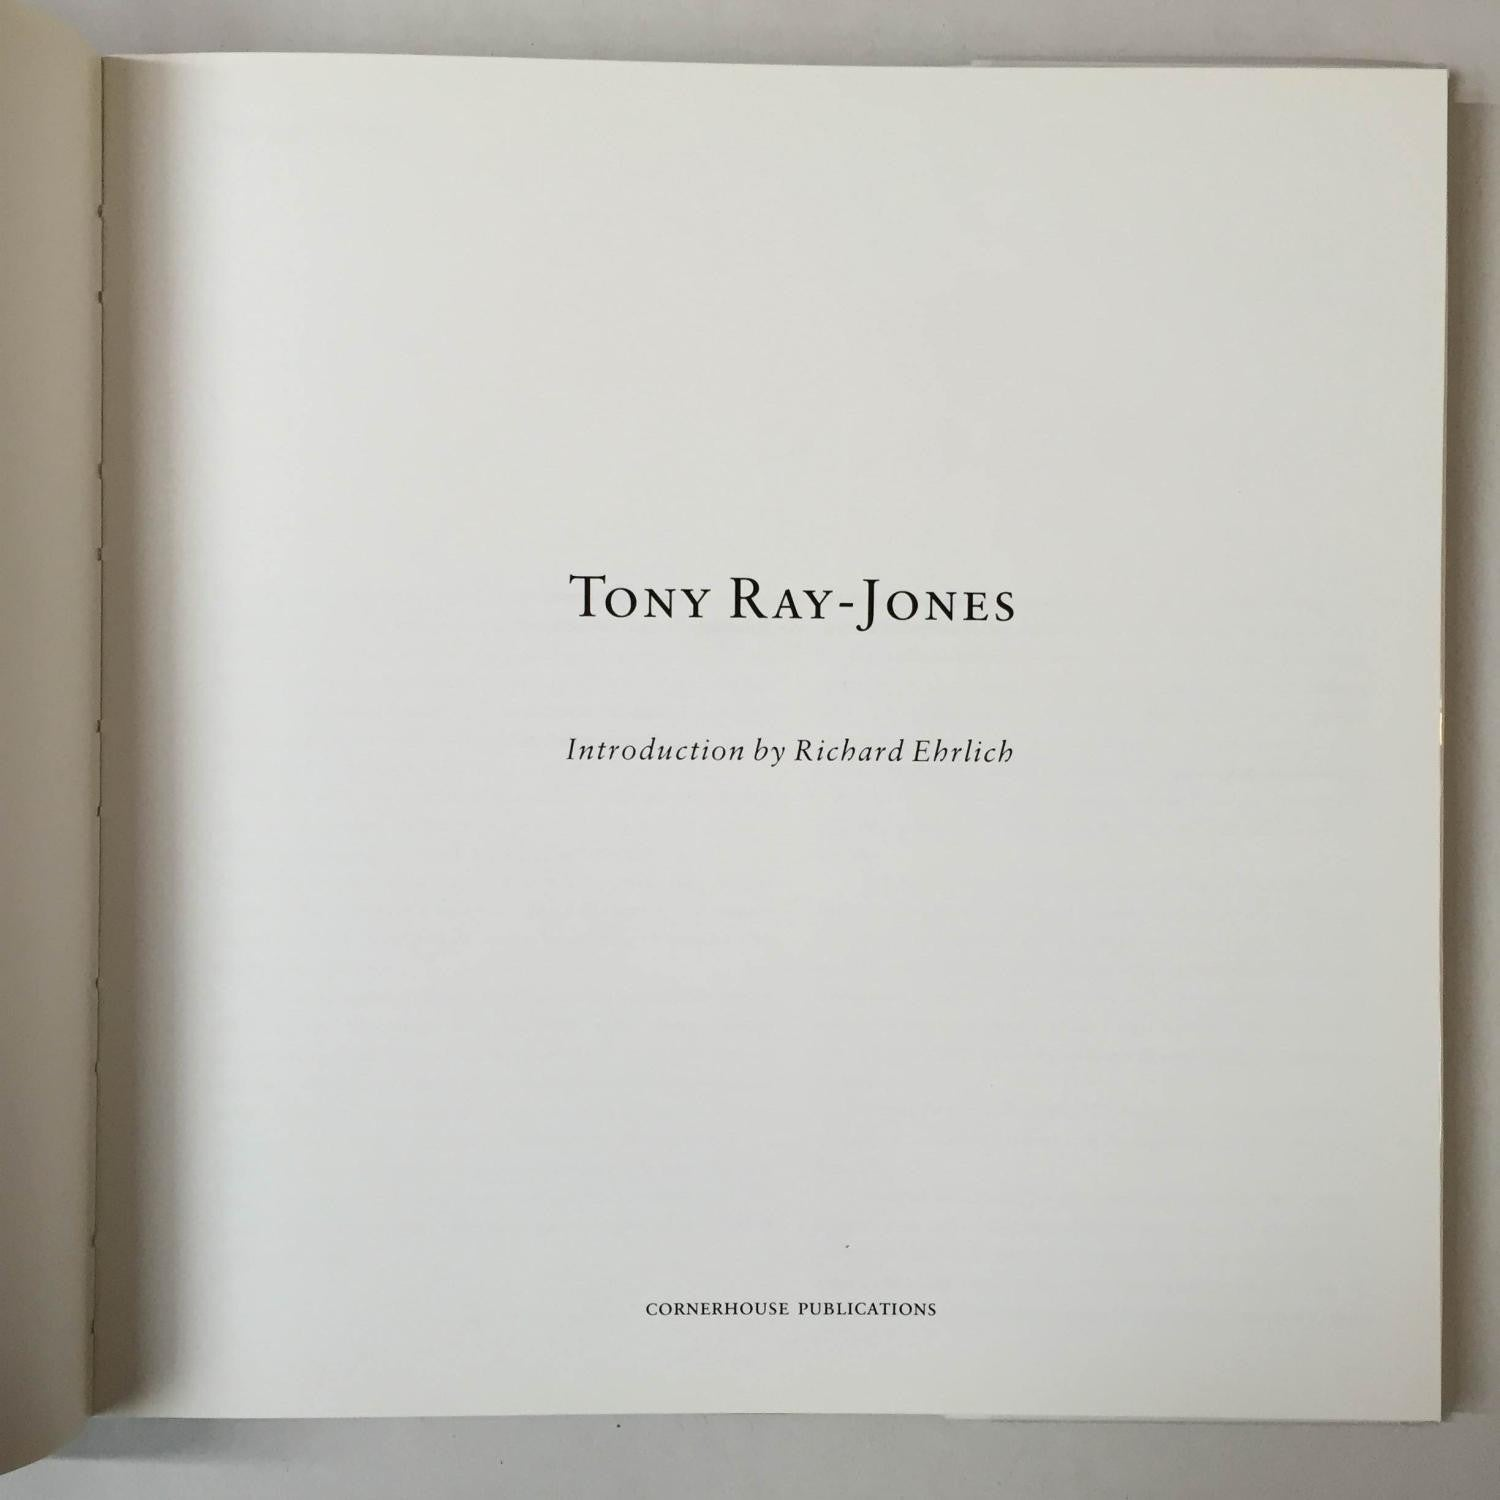 Richard Erlich & Tony Ray-Jones - A Retrospective View